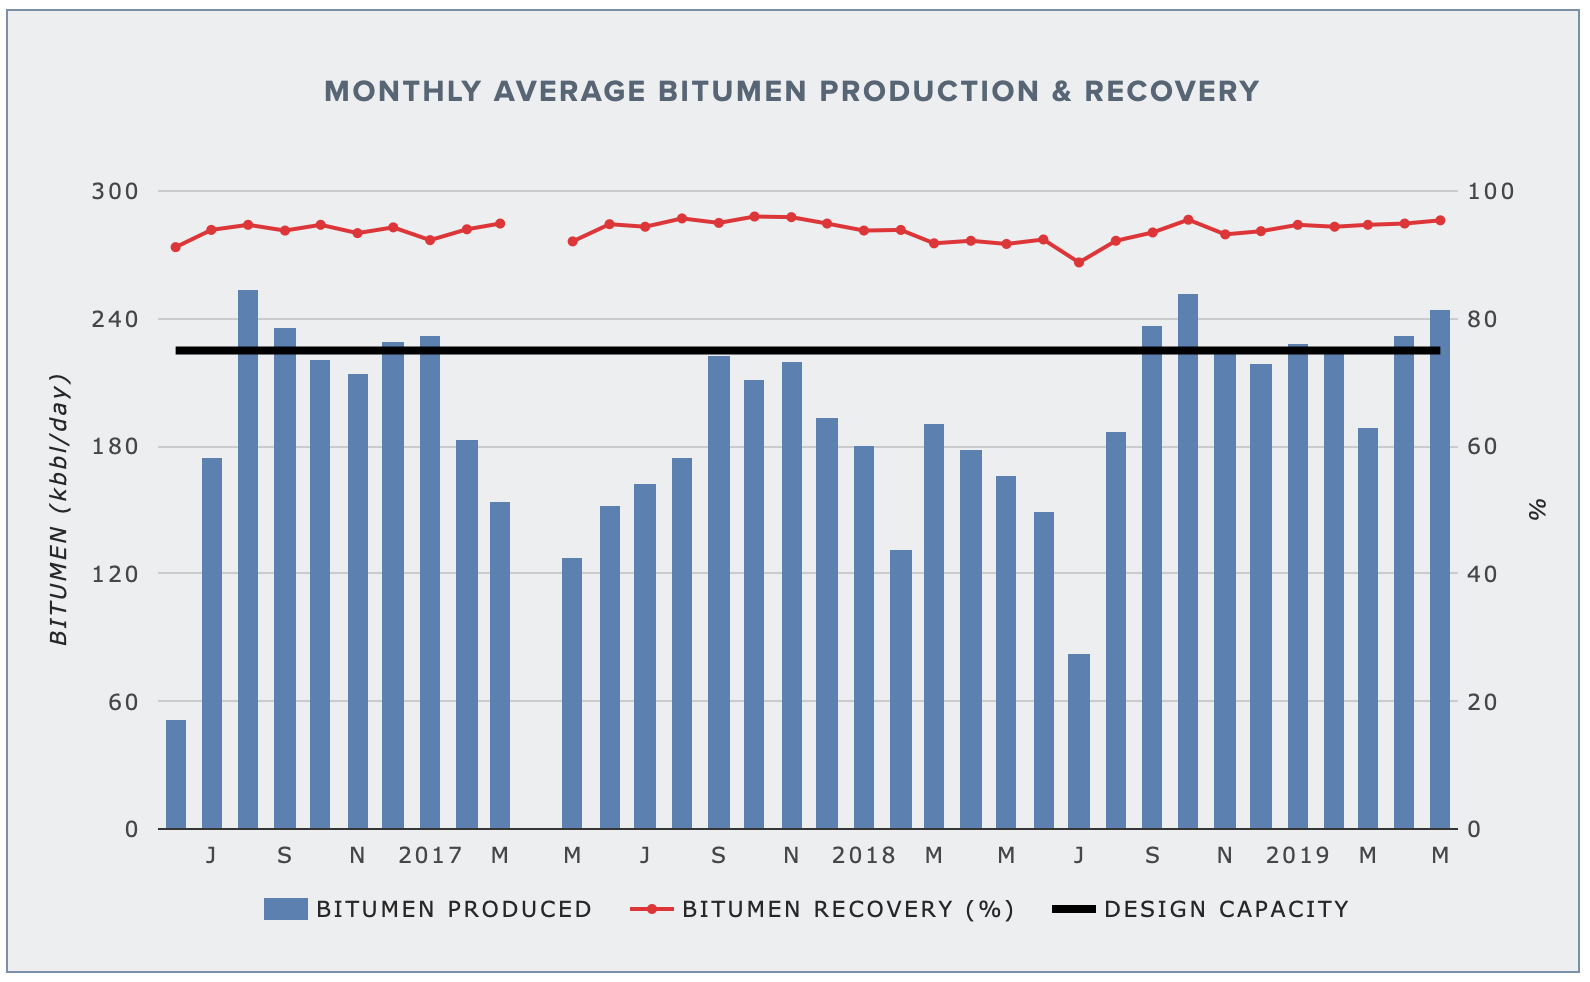 SYNCRUDE AURORA NORTH — BITUMEN PRODUCTION AND RECOVERY